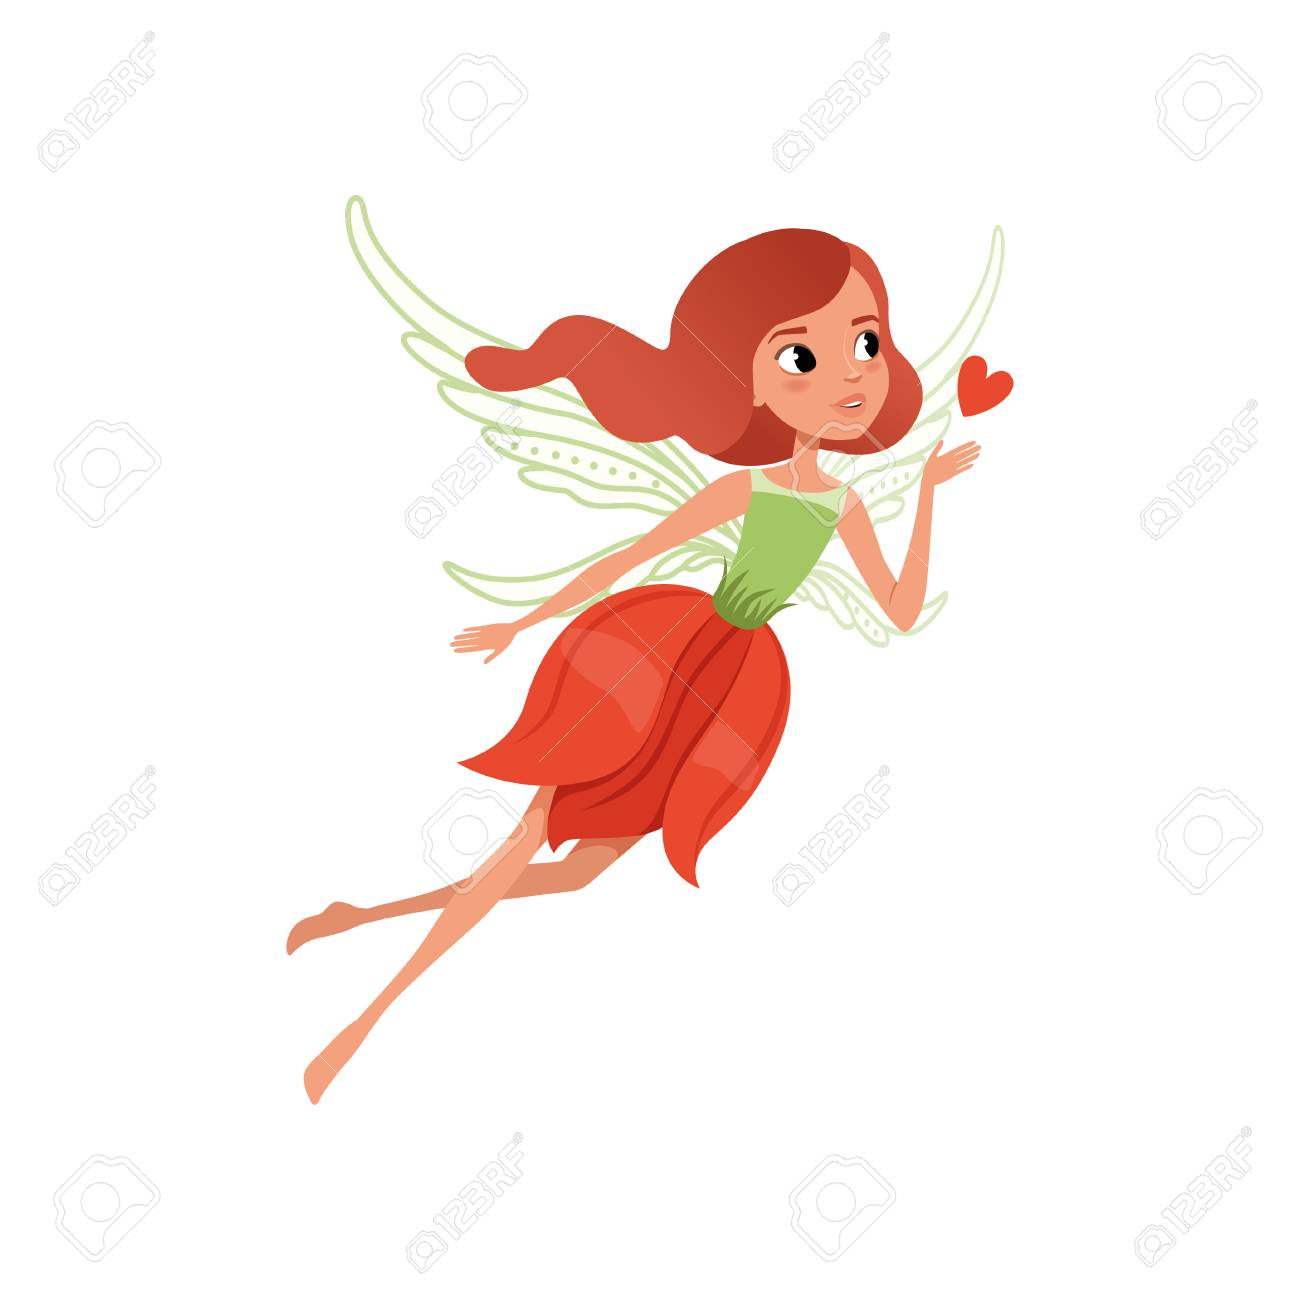 Cartoon fairy character with red hair and flower shaped dress. Beautiful mythical creature with magic wings, little girl in flying action flat vector illustration for children's book, print or card. - 94315196